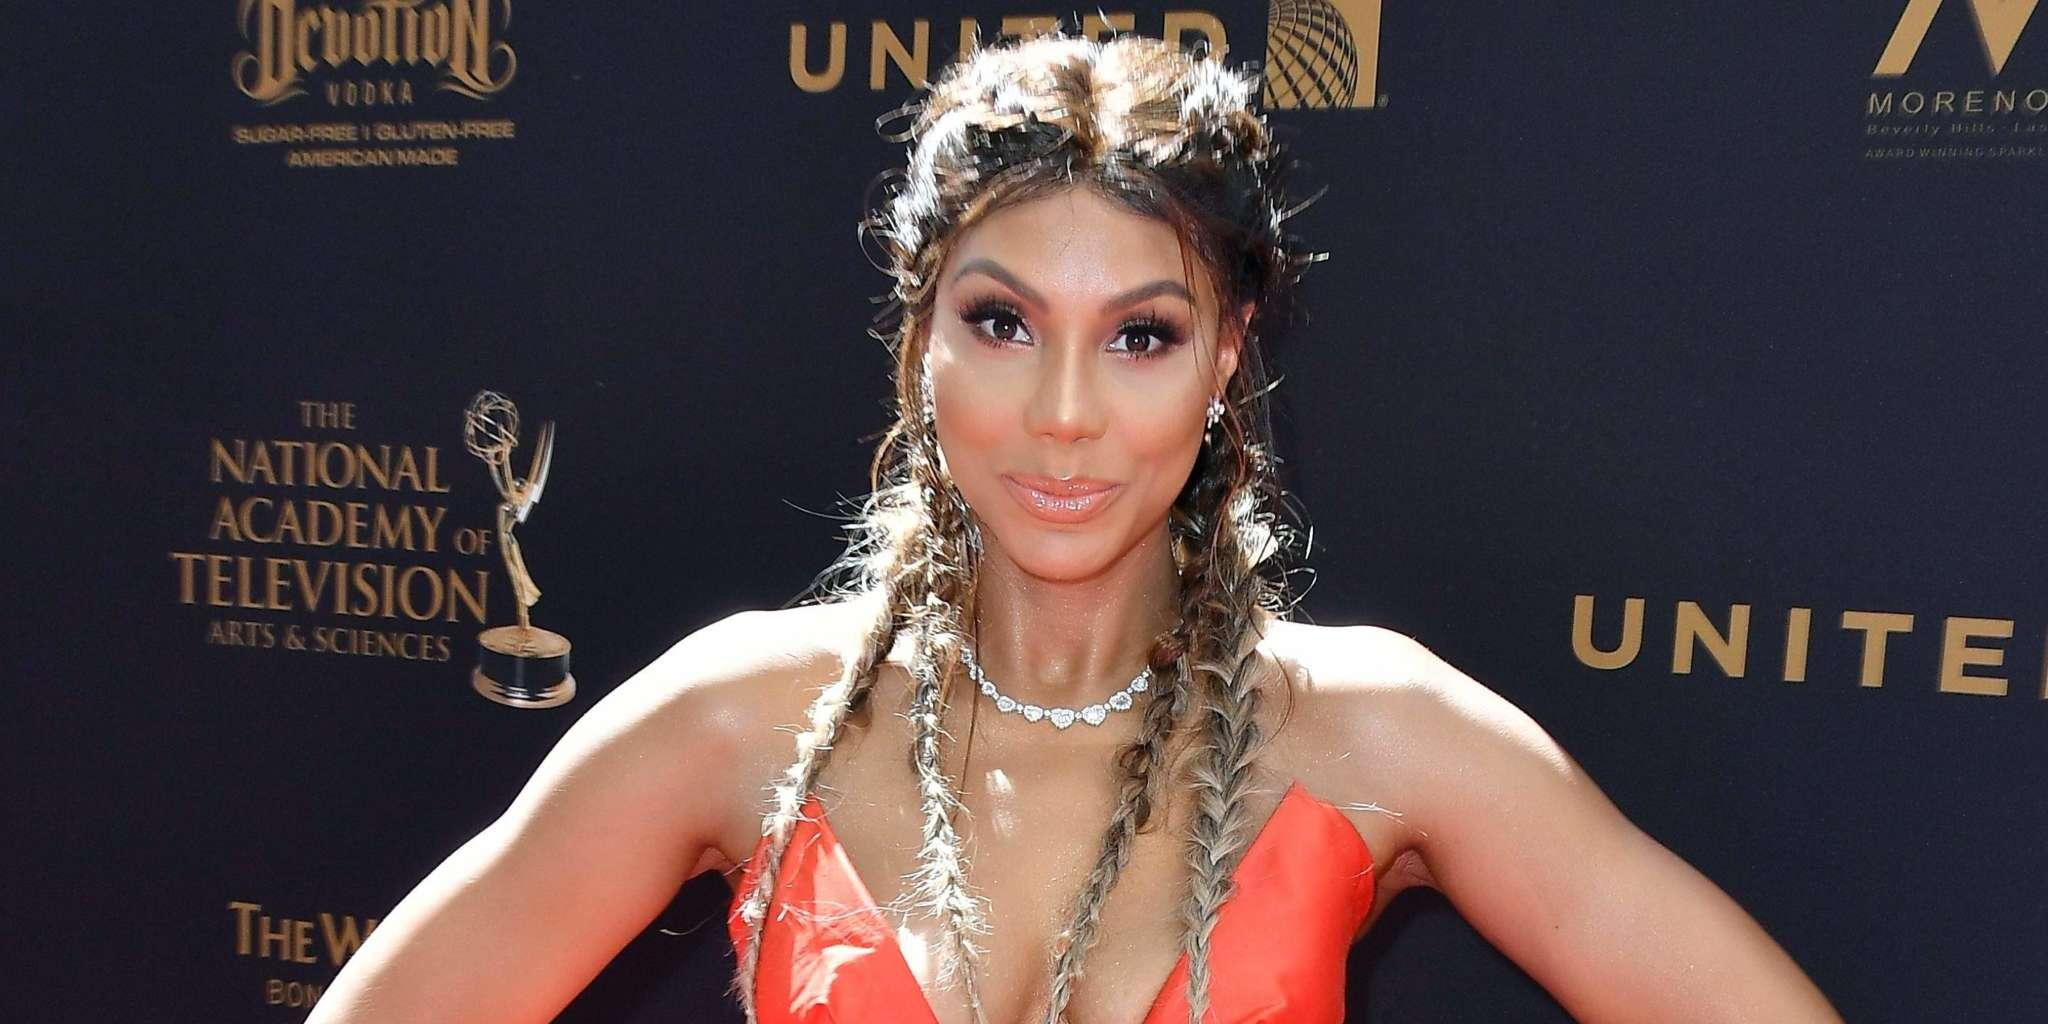 Tamar Braxton's Latest Video On Stage Has Fans Going Crazy Over Her Amazing Voice